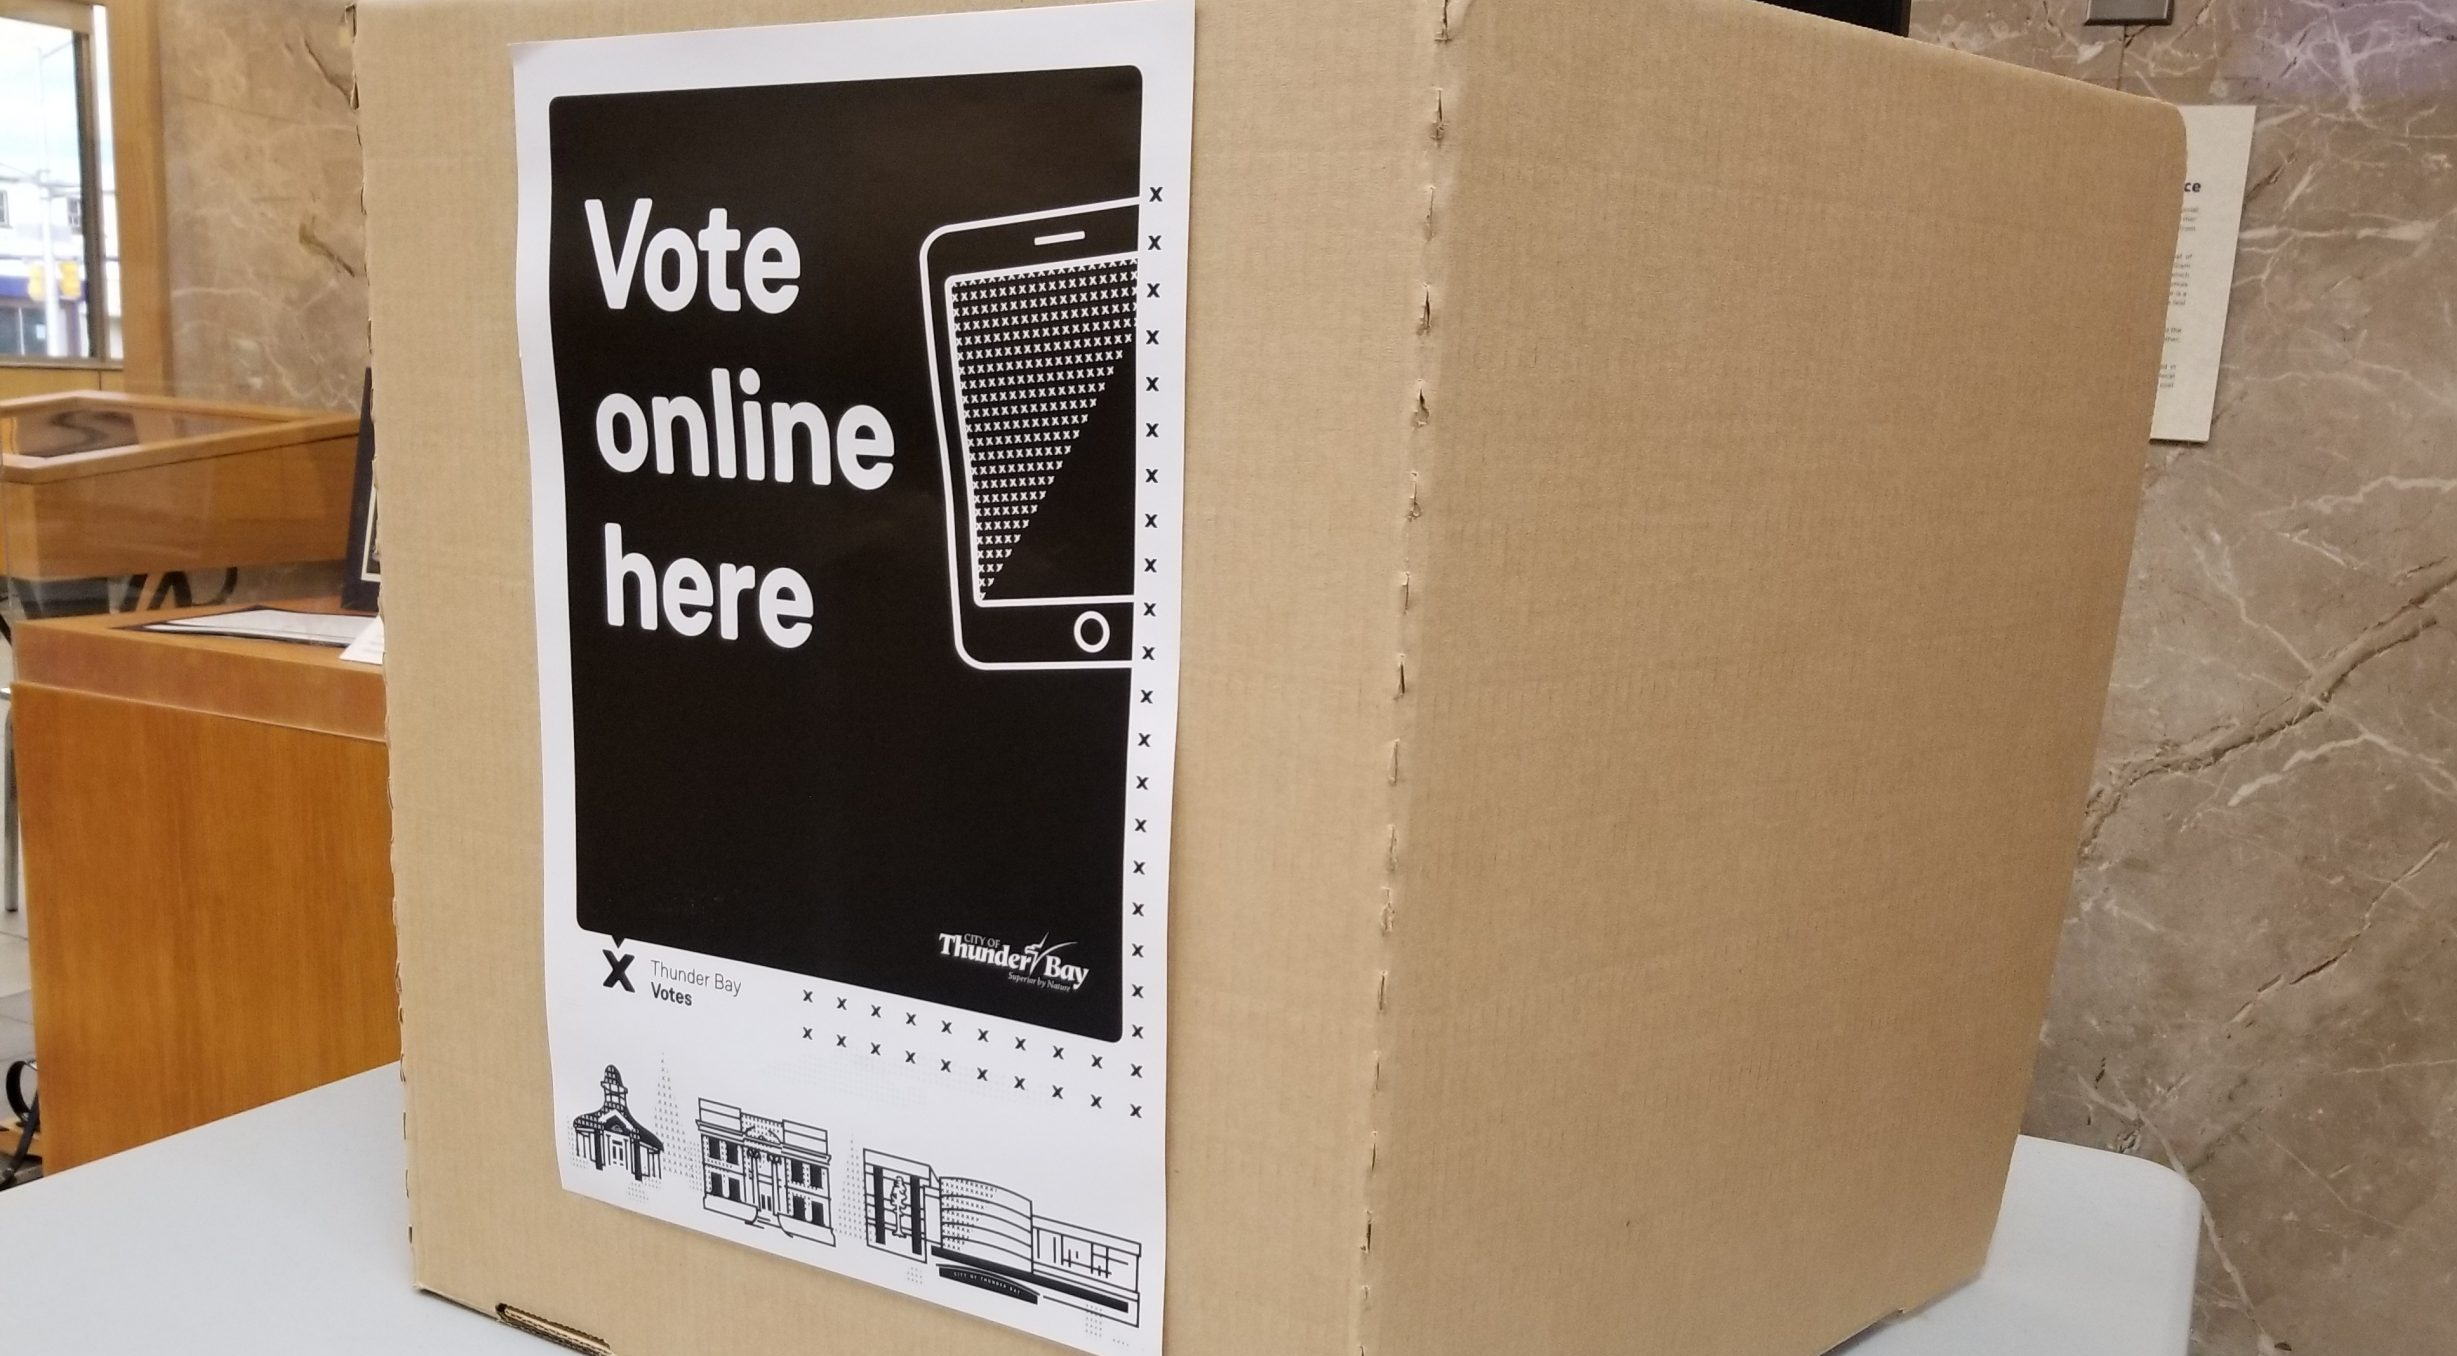 City Clerk Expects No Issues With Fewer Polling Stations